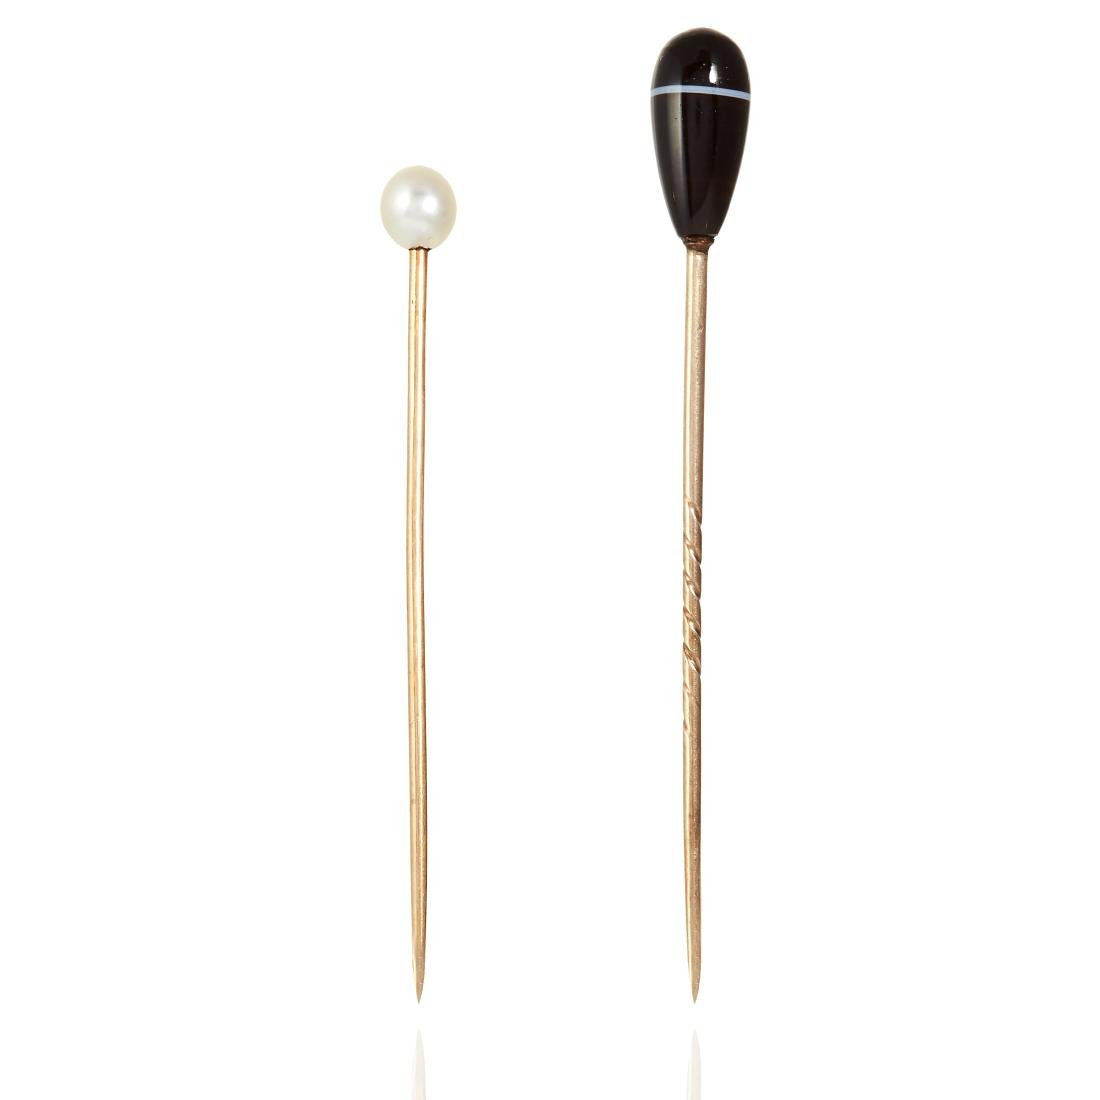 TWO ANTIQUE TIE / STICK PINS in yellow gold, one set